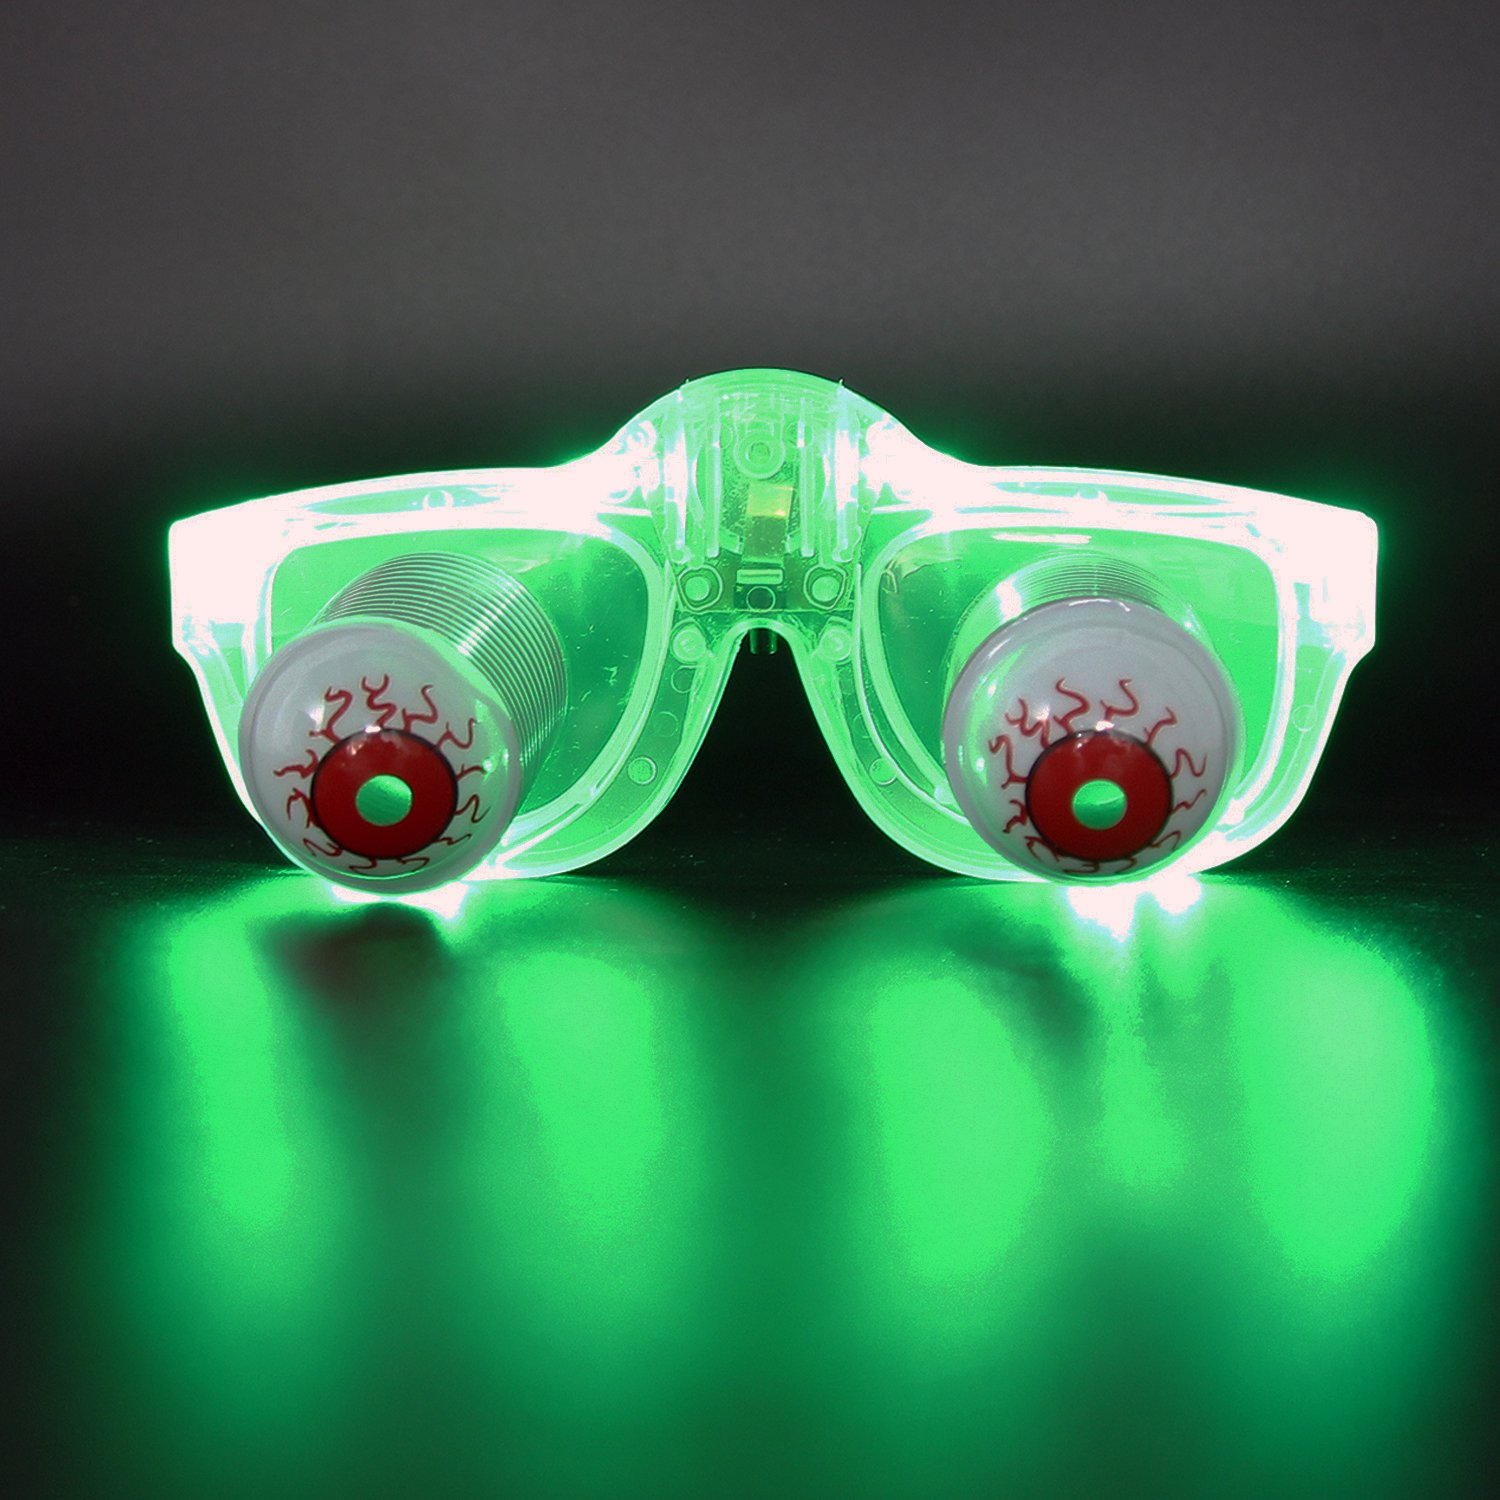 95257956d3f19 Get Quotations · DA XIN Light Up Pop Out Eyes Glasses Droopy Eyes Glasses  Goofy Slinky Pop Out Eye